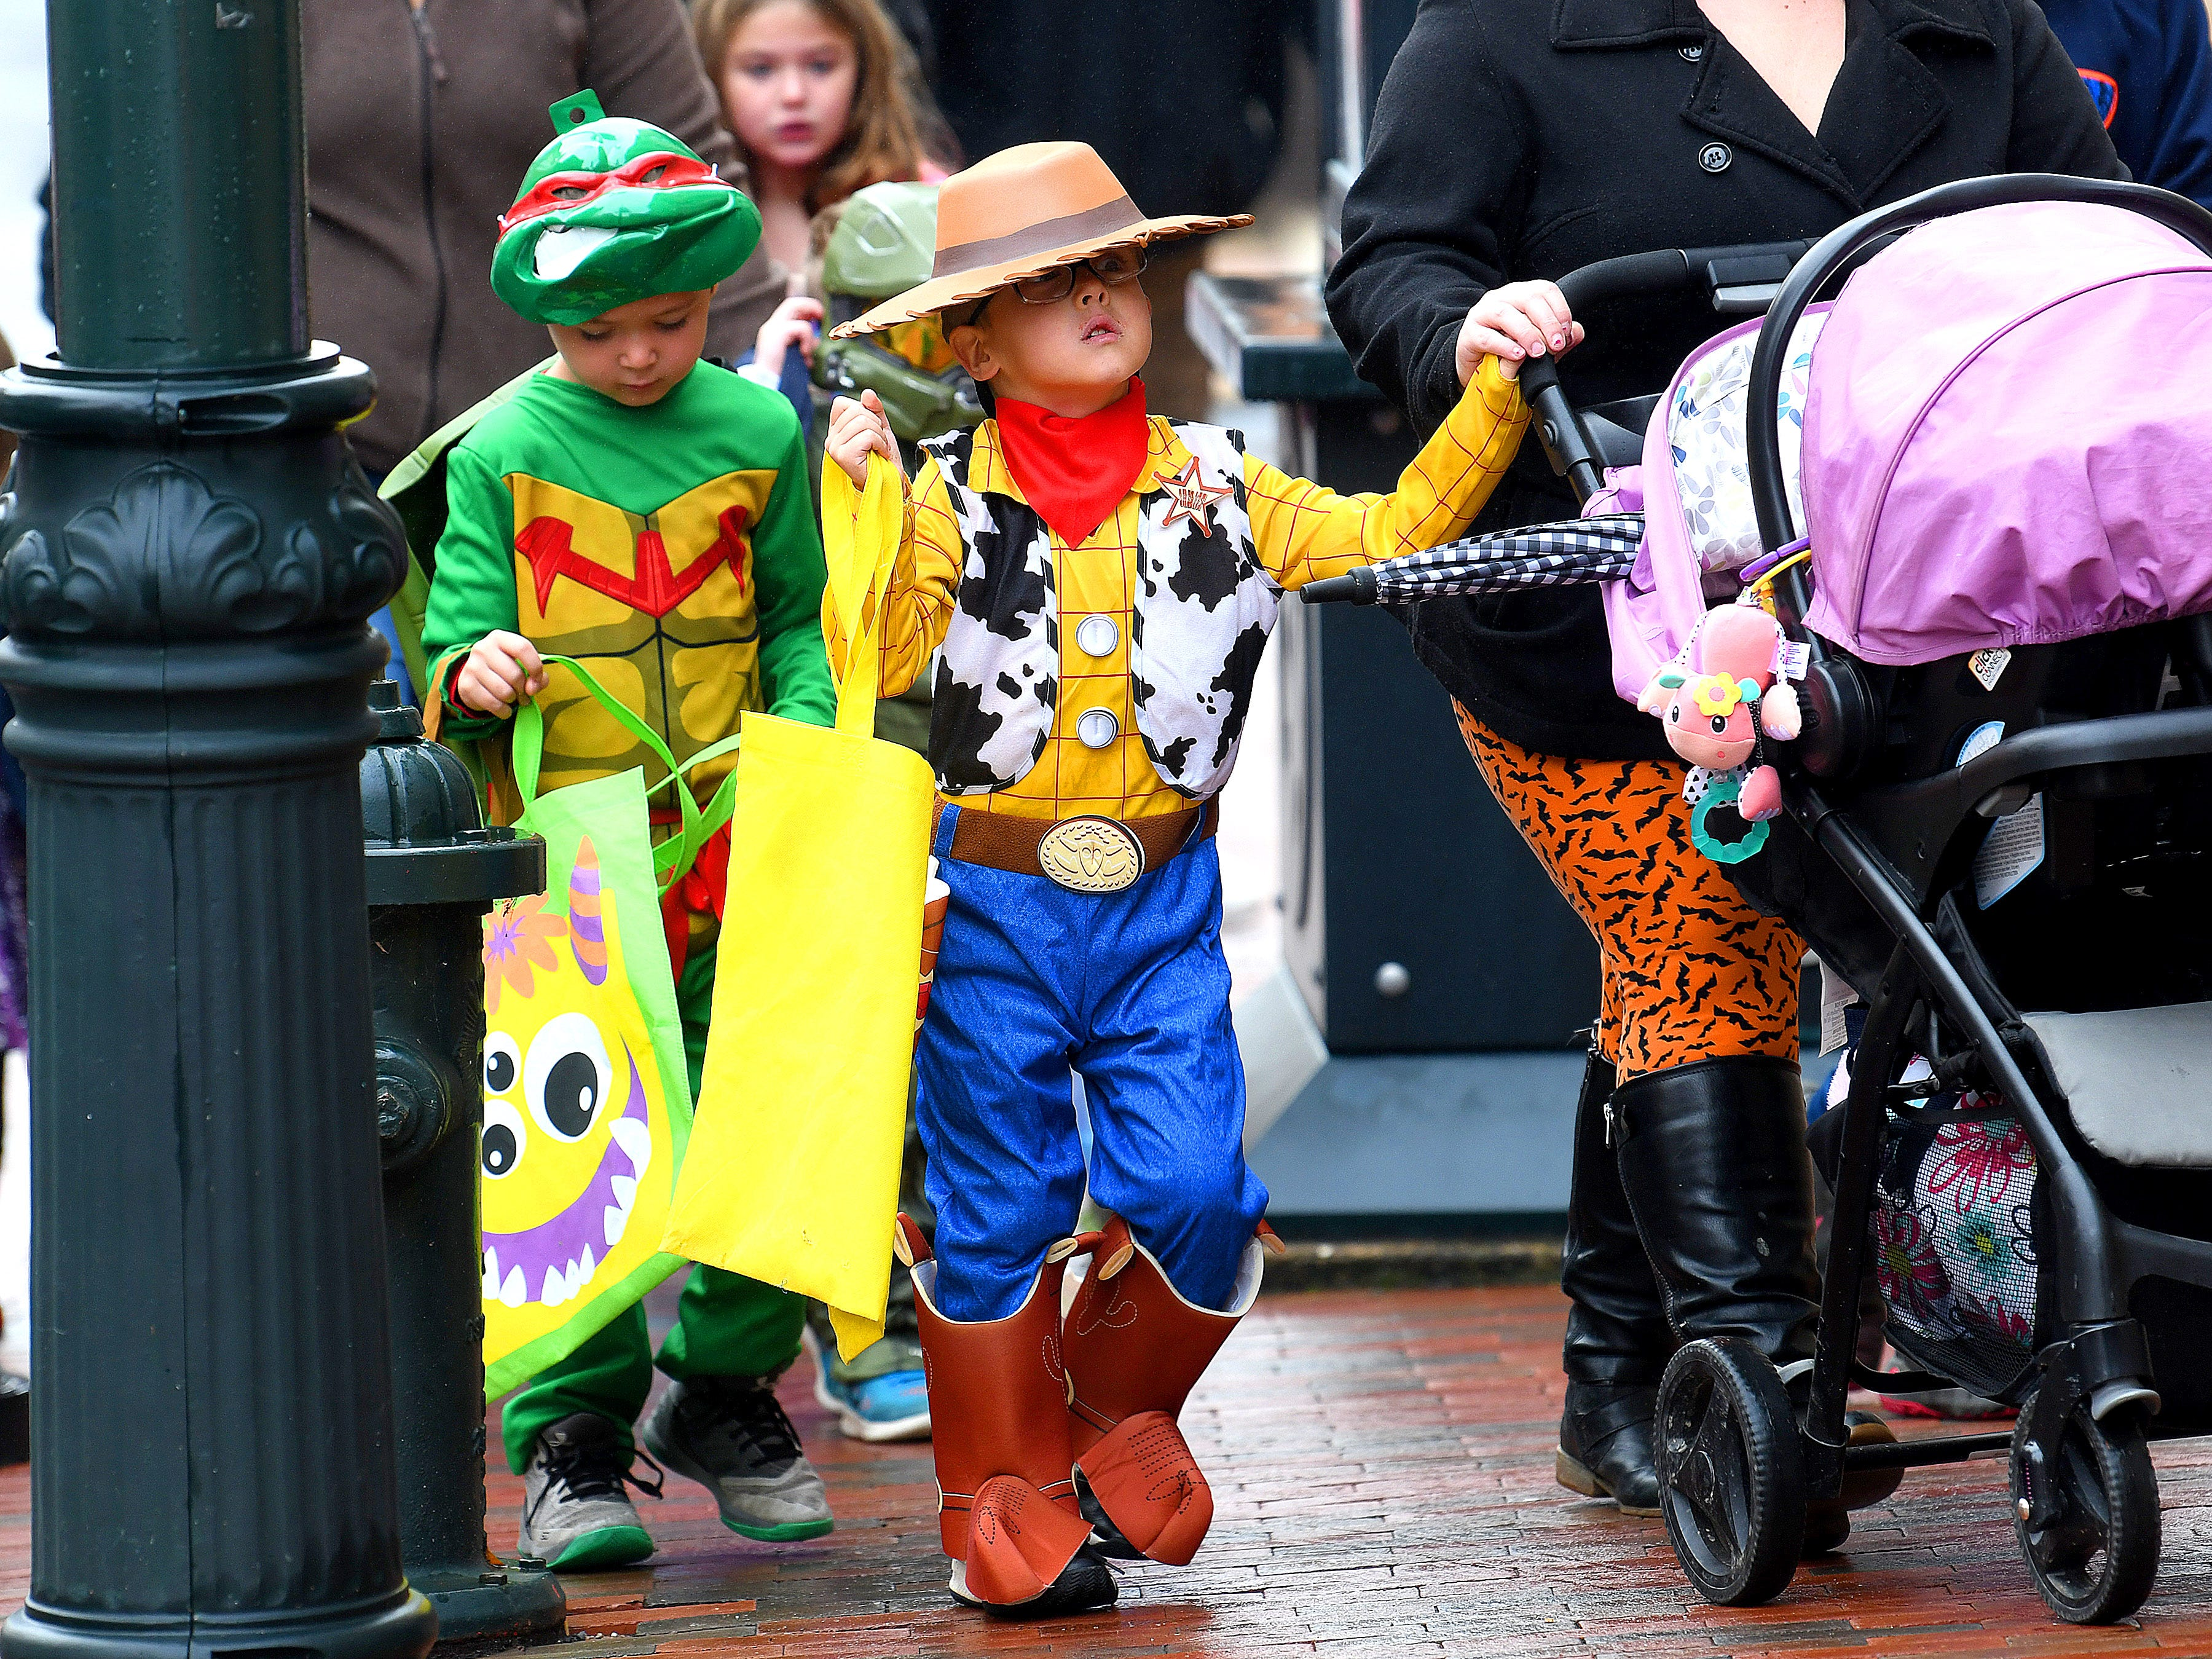 Sheriff Woody of Toy Story trick-or-treats in downtown Staunton on Saturday, Oct. 27, 2018.